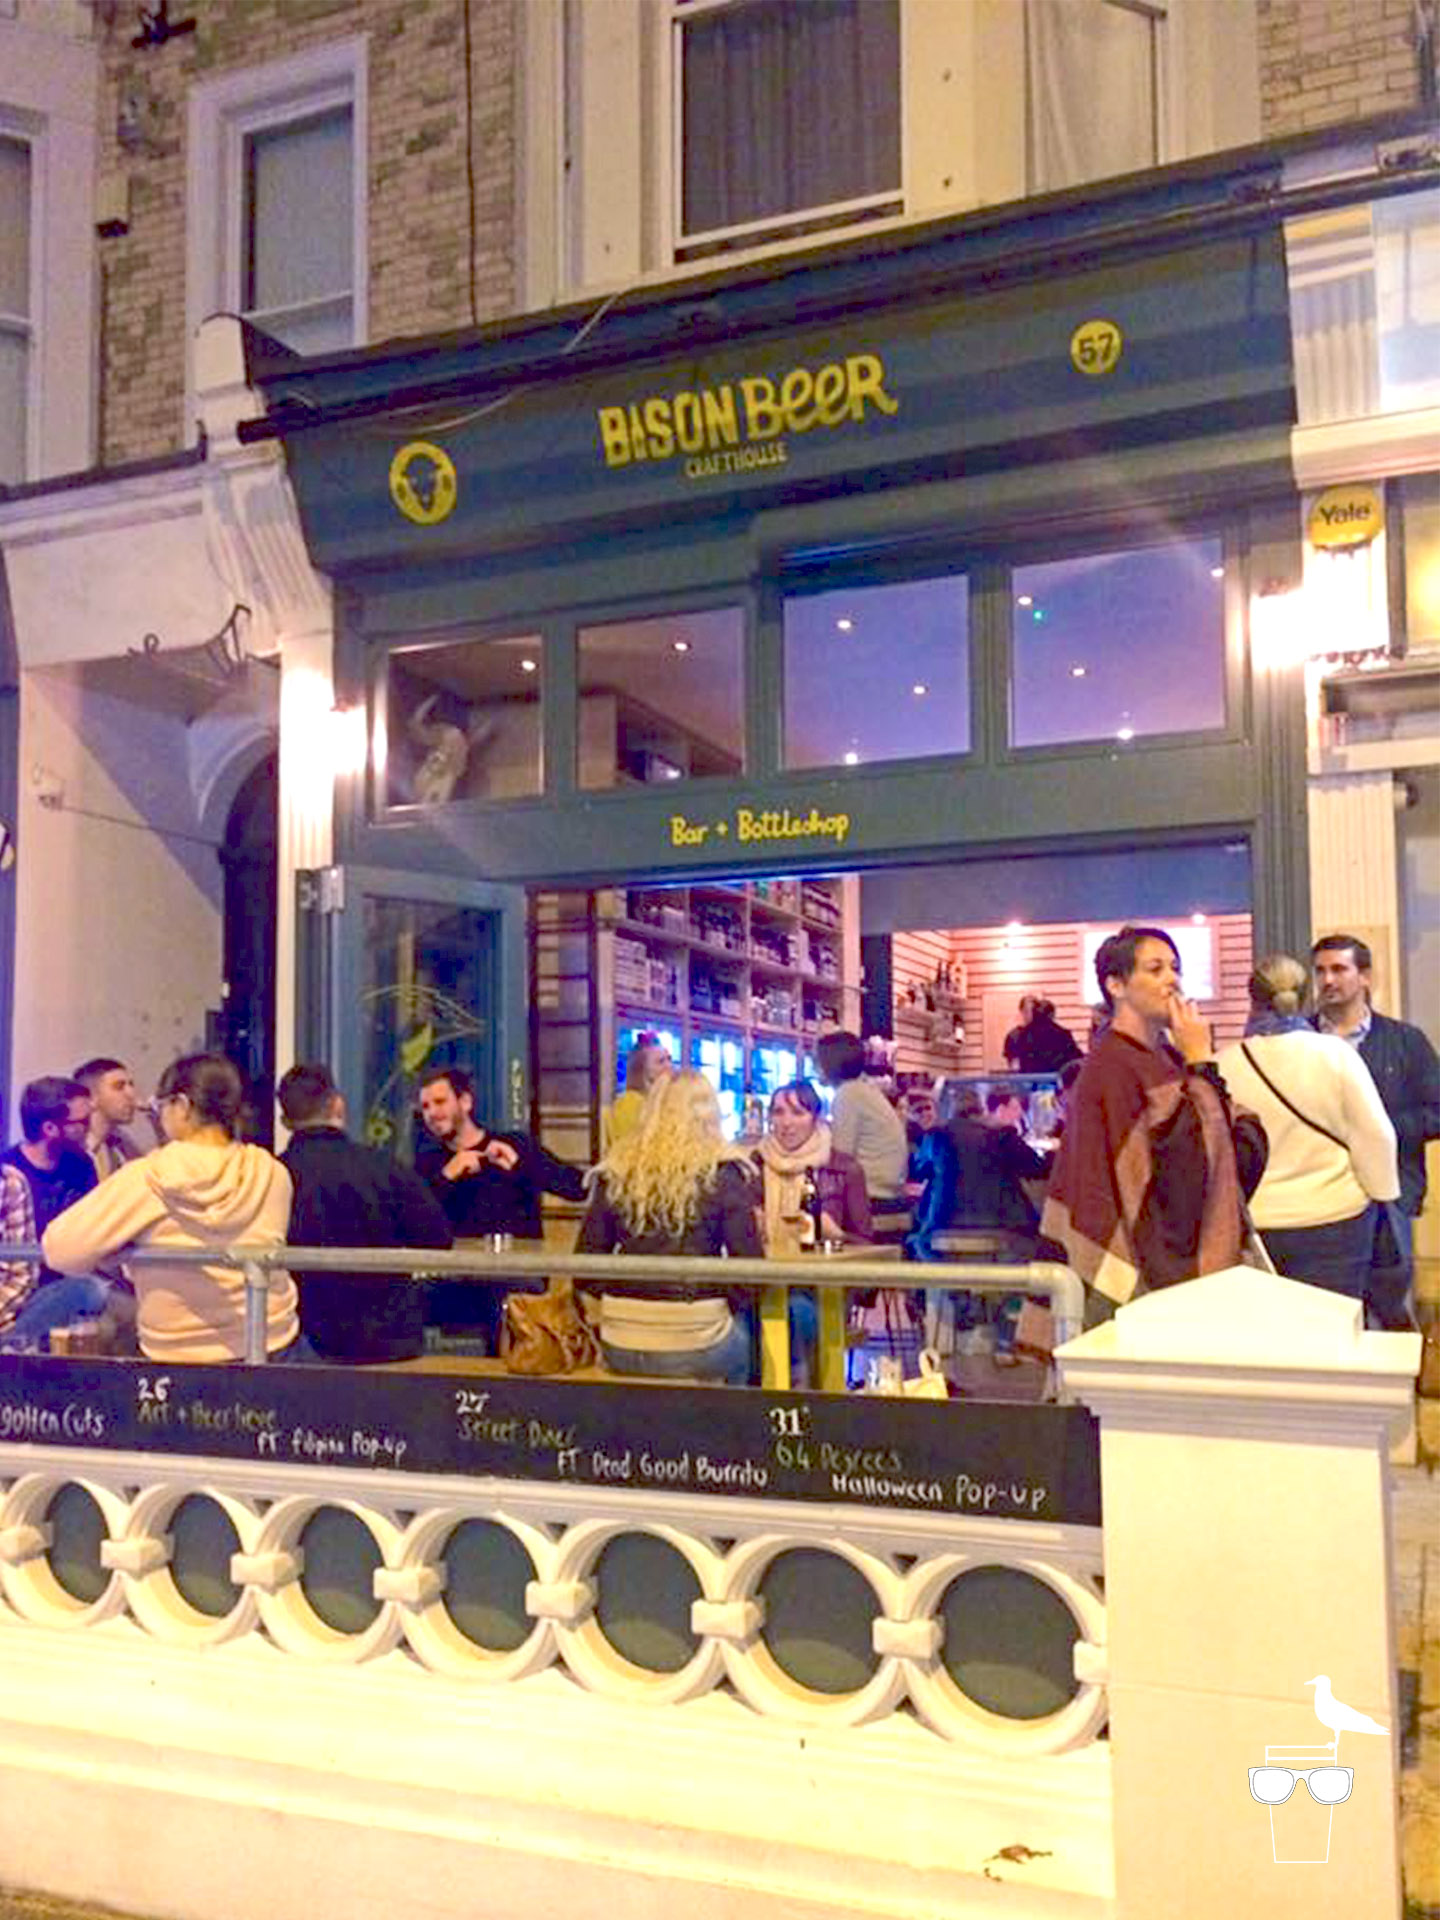 bison beer hove bar outside in the evening busy